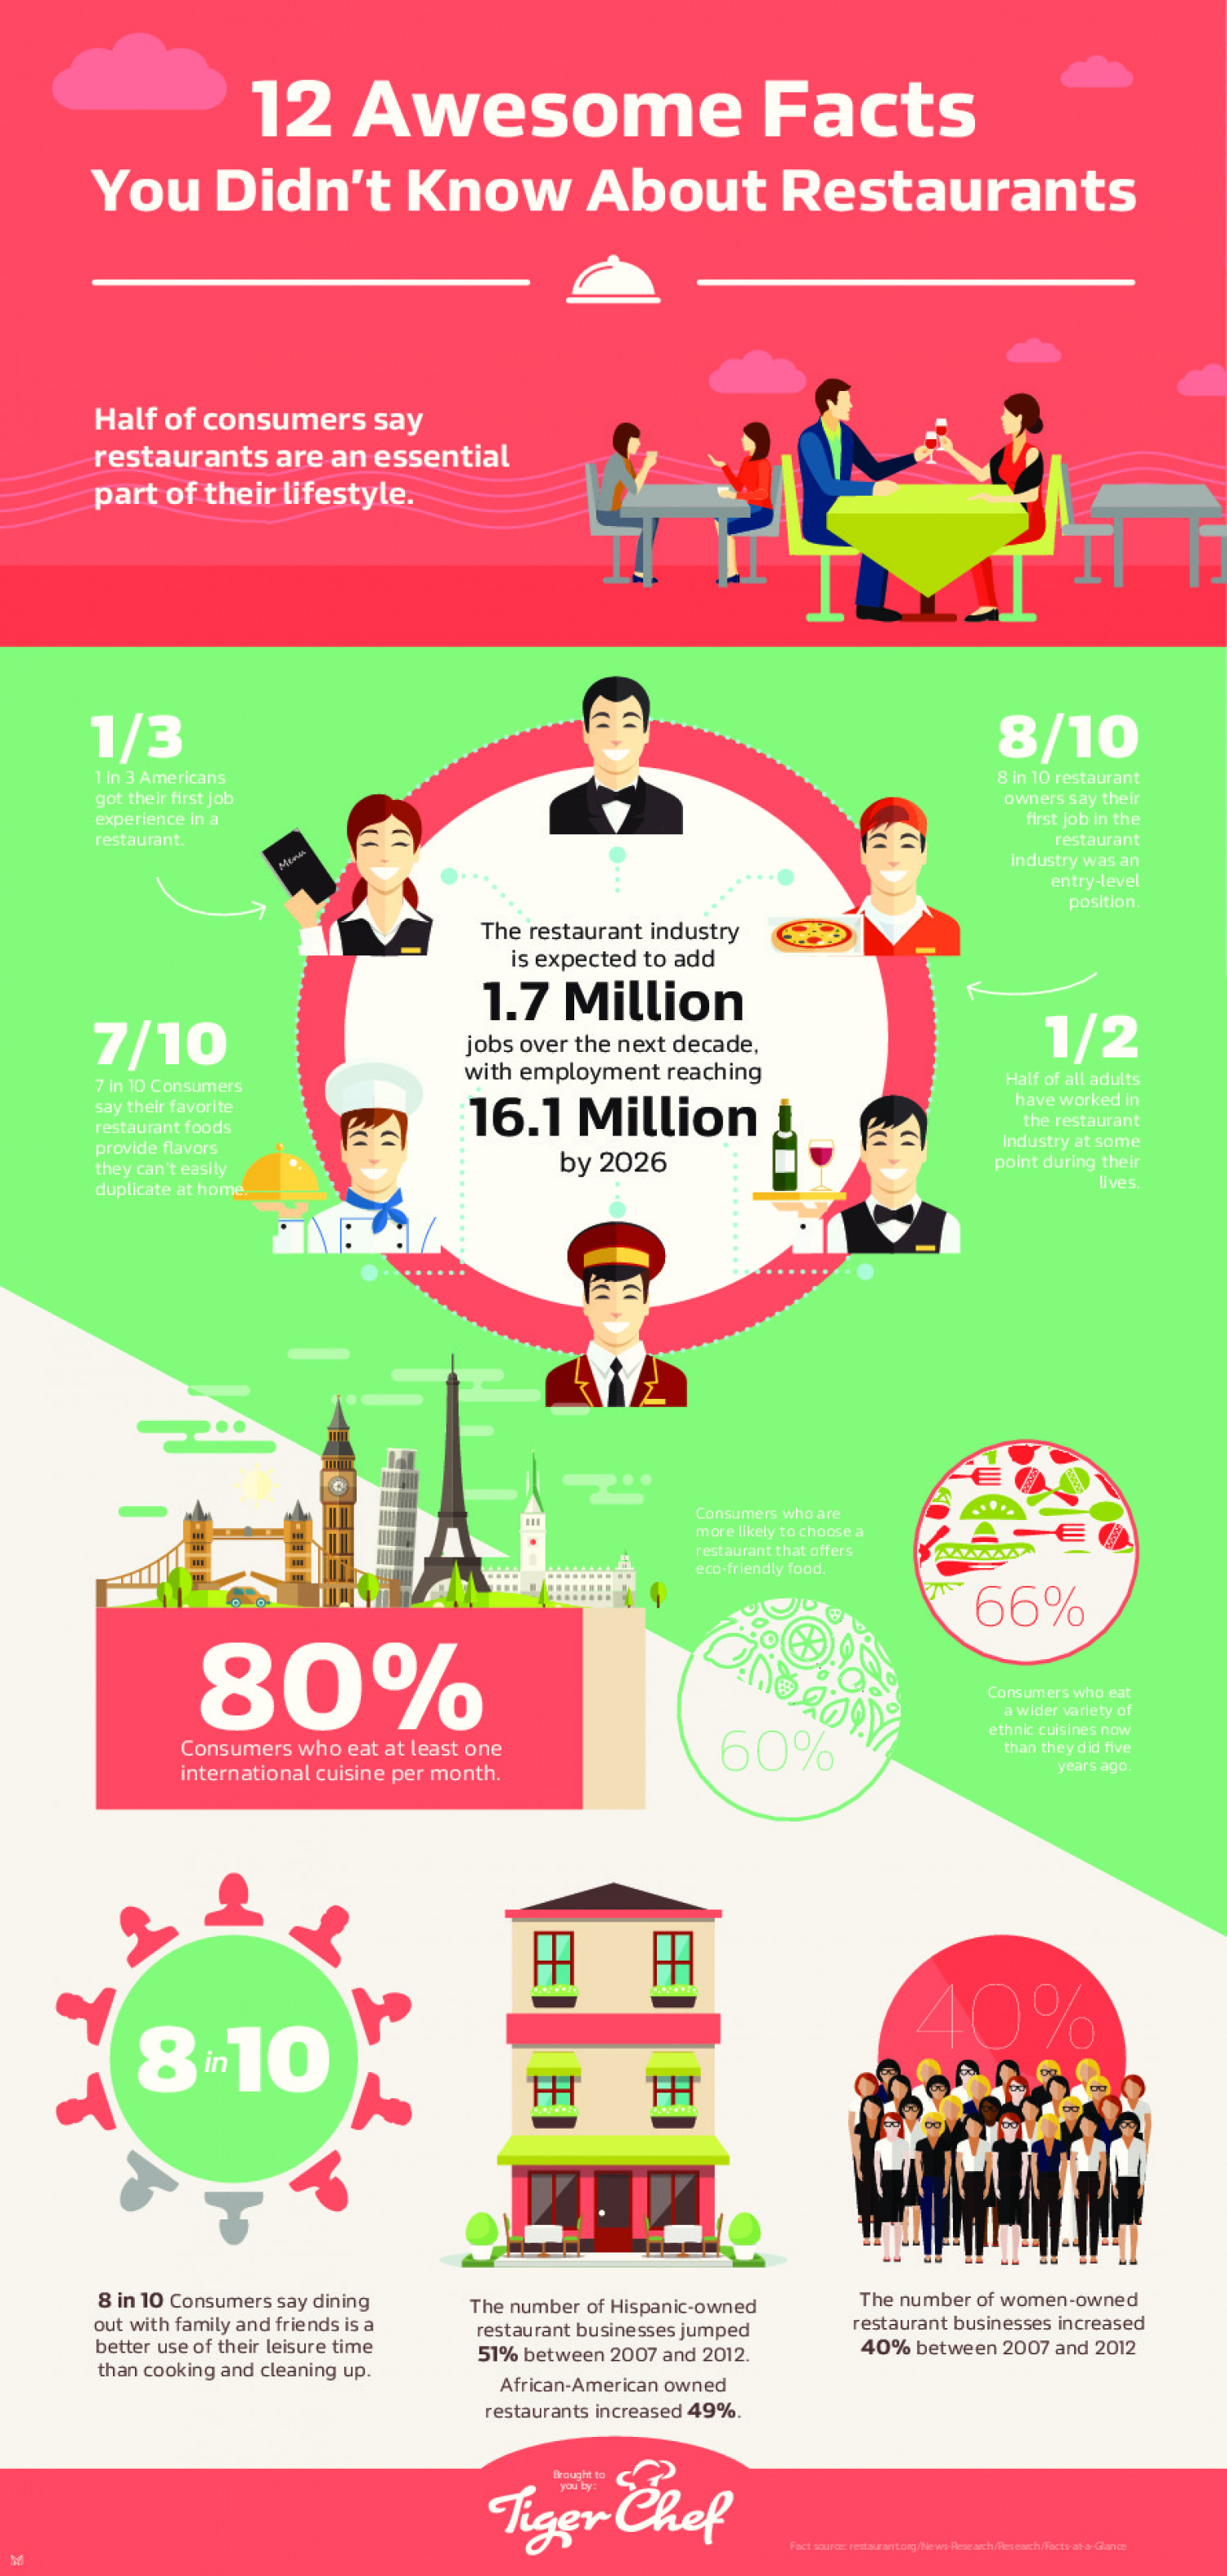 12 Awesome Facts You Didn't Know About Restaurants Infographic